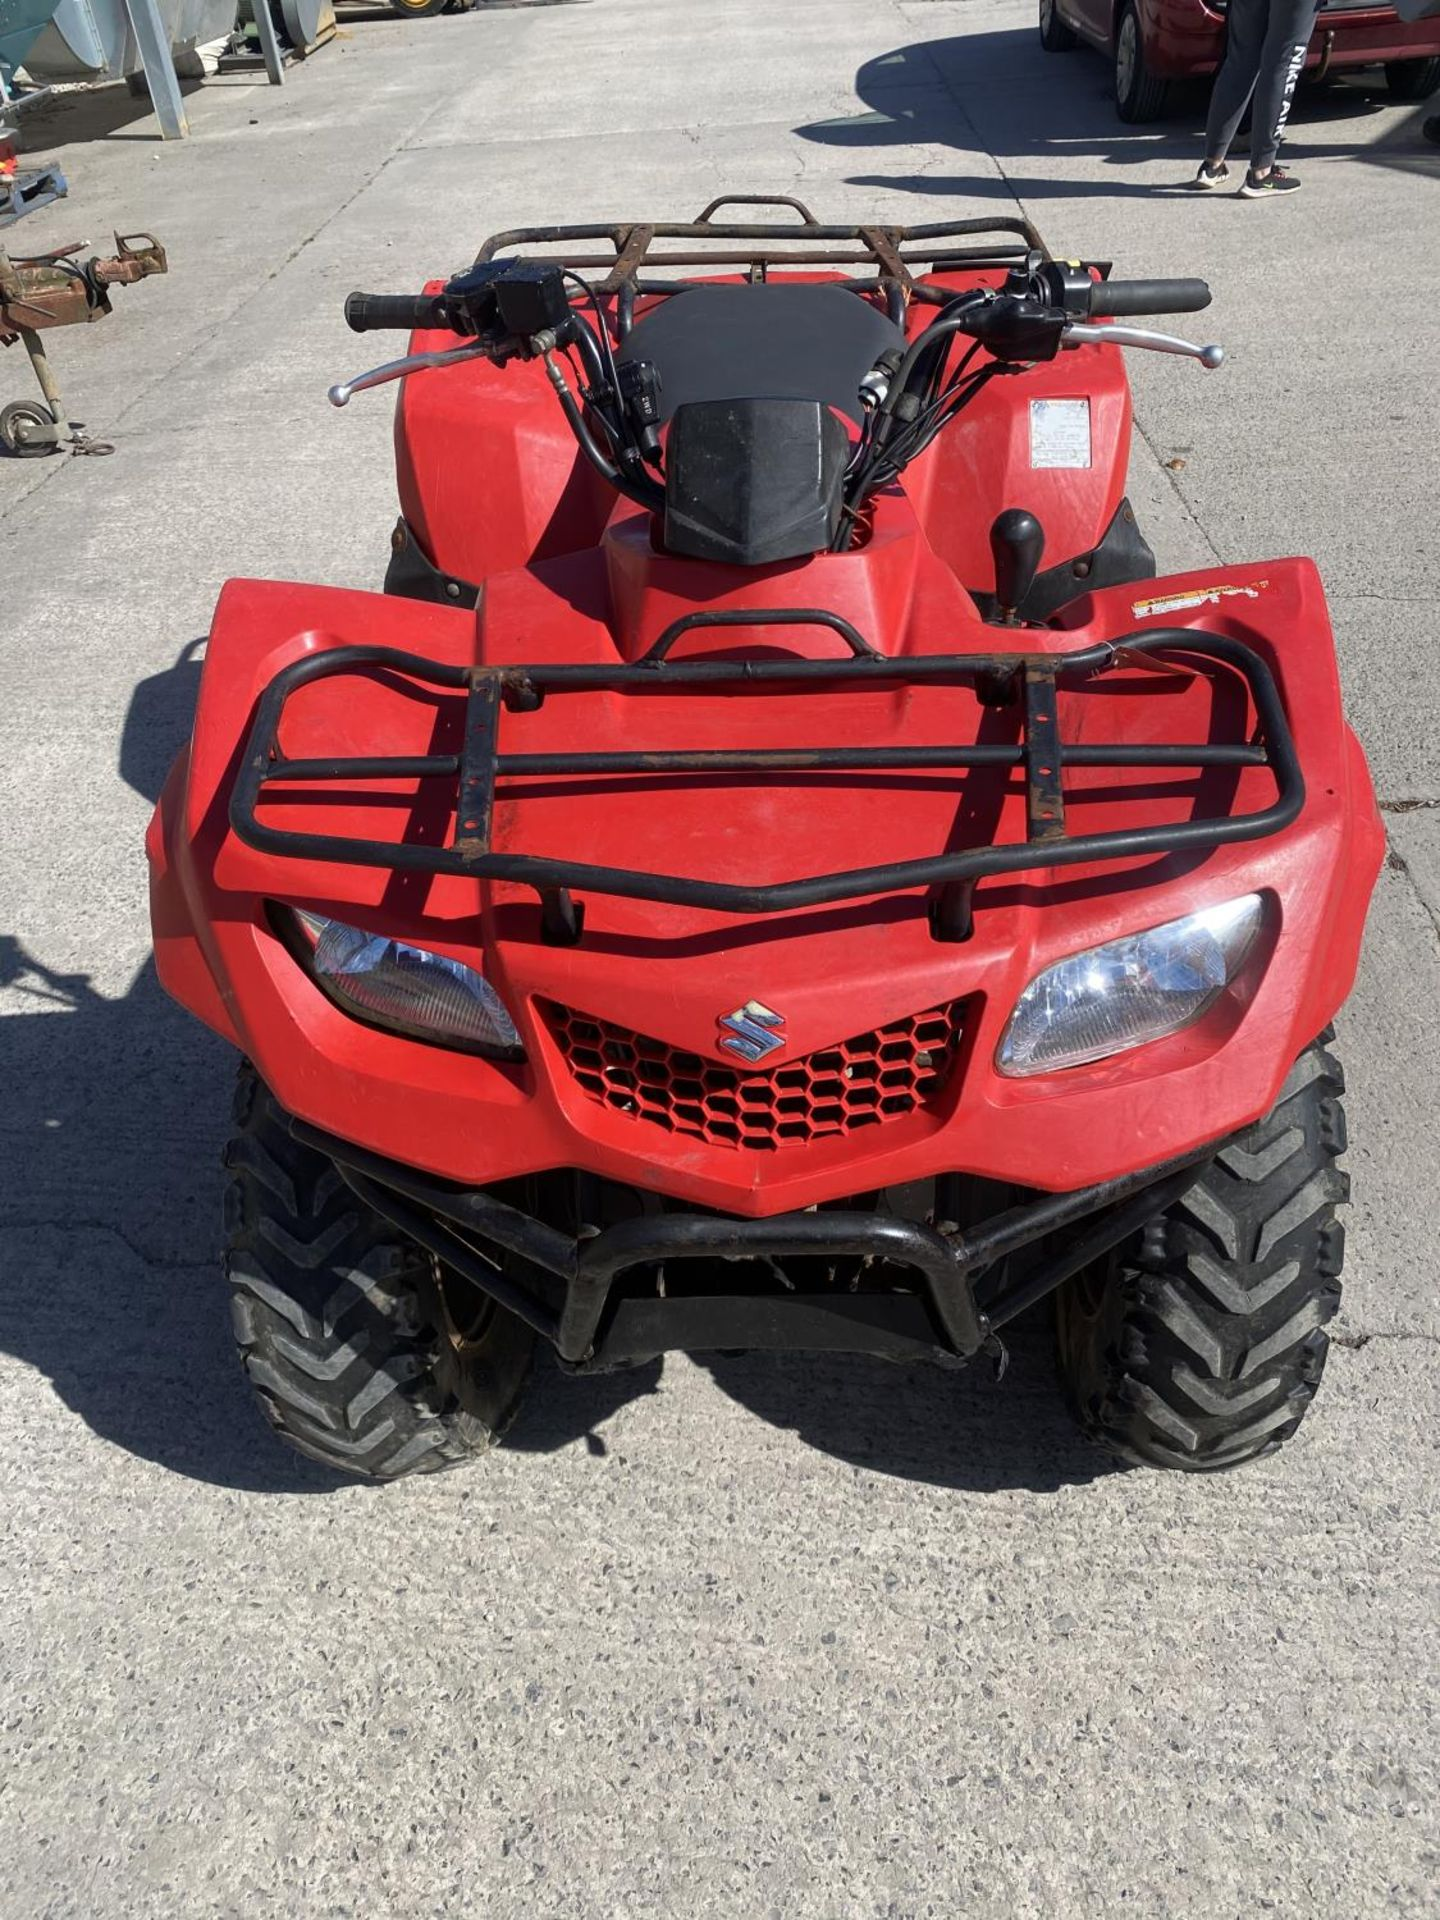 A 2013 SUZUKI KING QUAD, 400 CC AUTOMATIC - SEE VIDEO OF VEHICLE STARTING AND RUNNING - NO VAT - Image 3 of 12